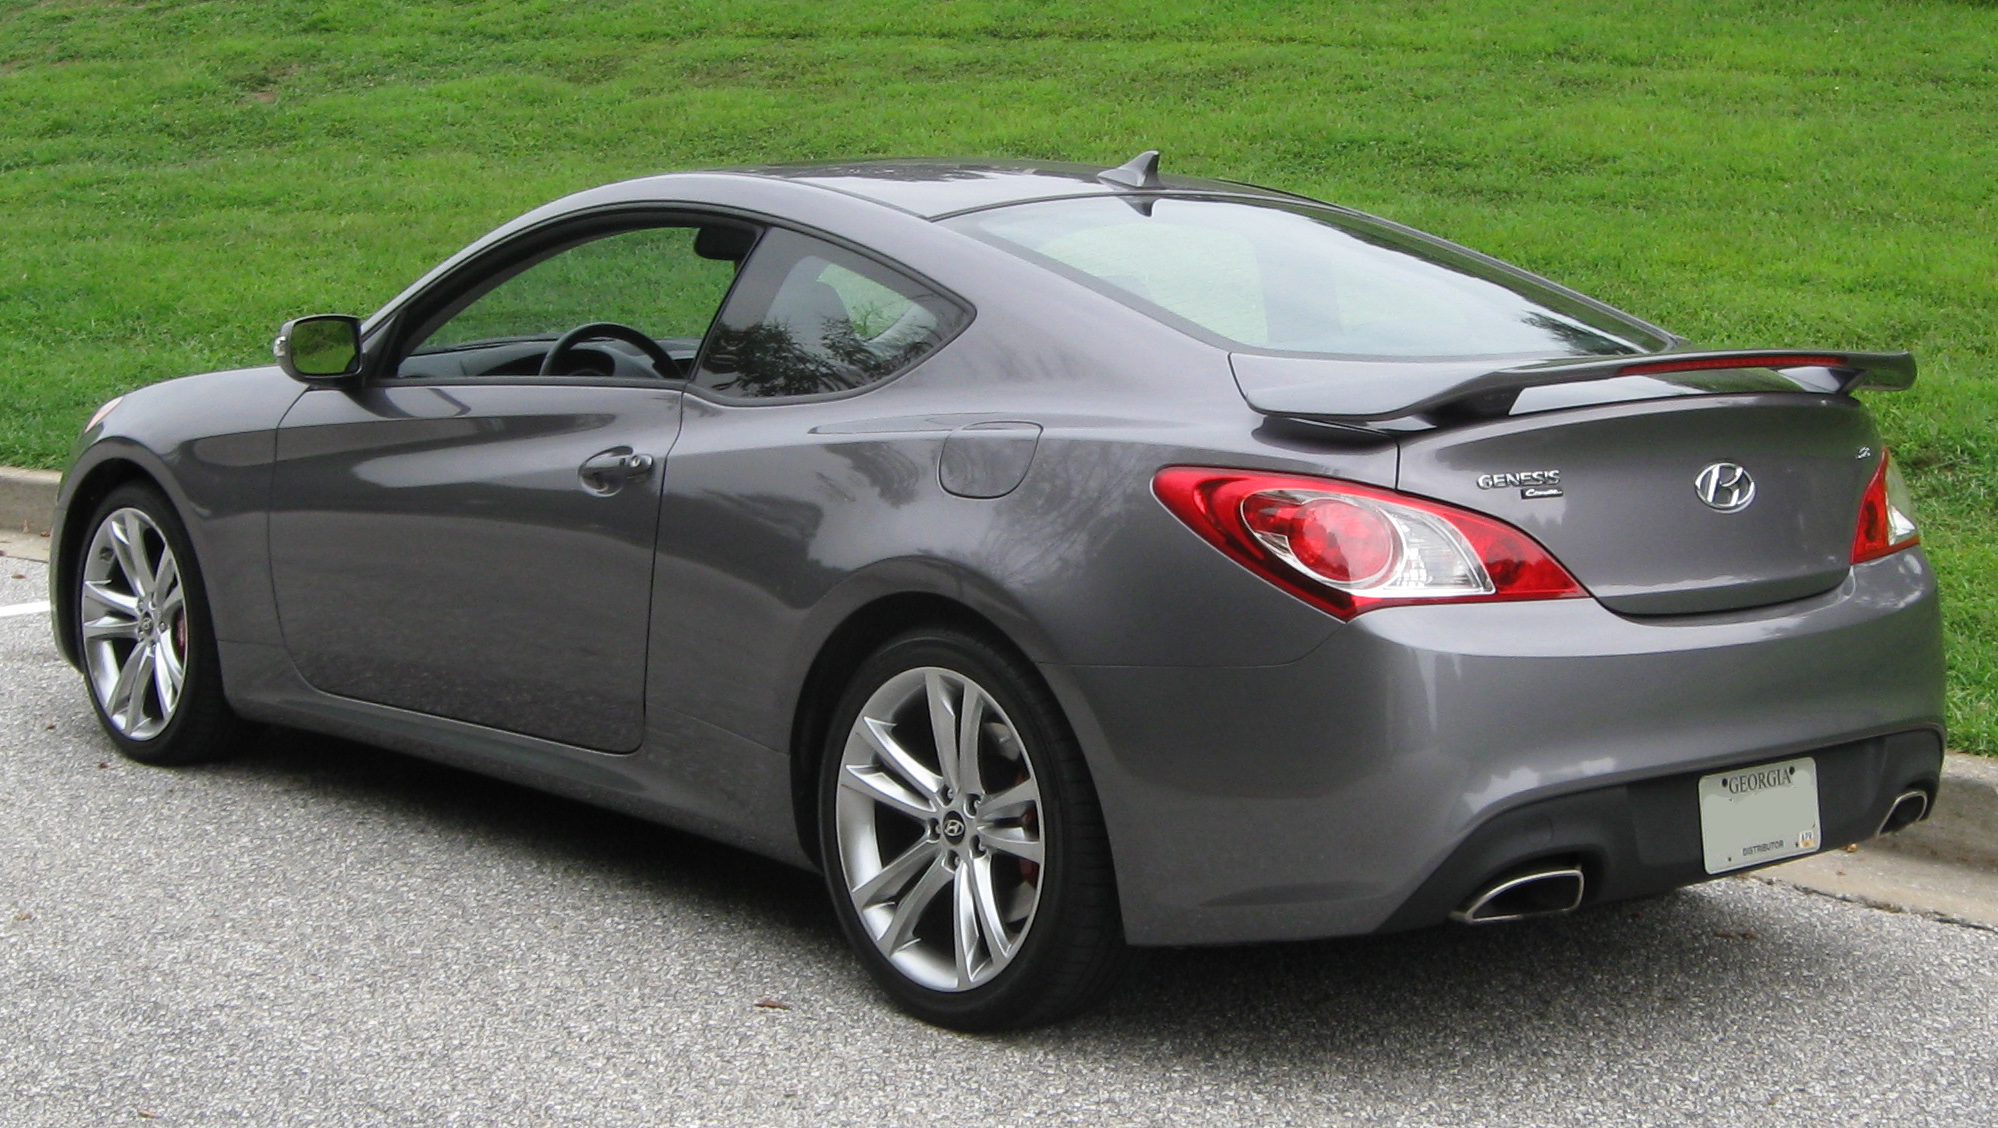 Hyundai Genesis Coupe photo 10